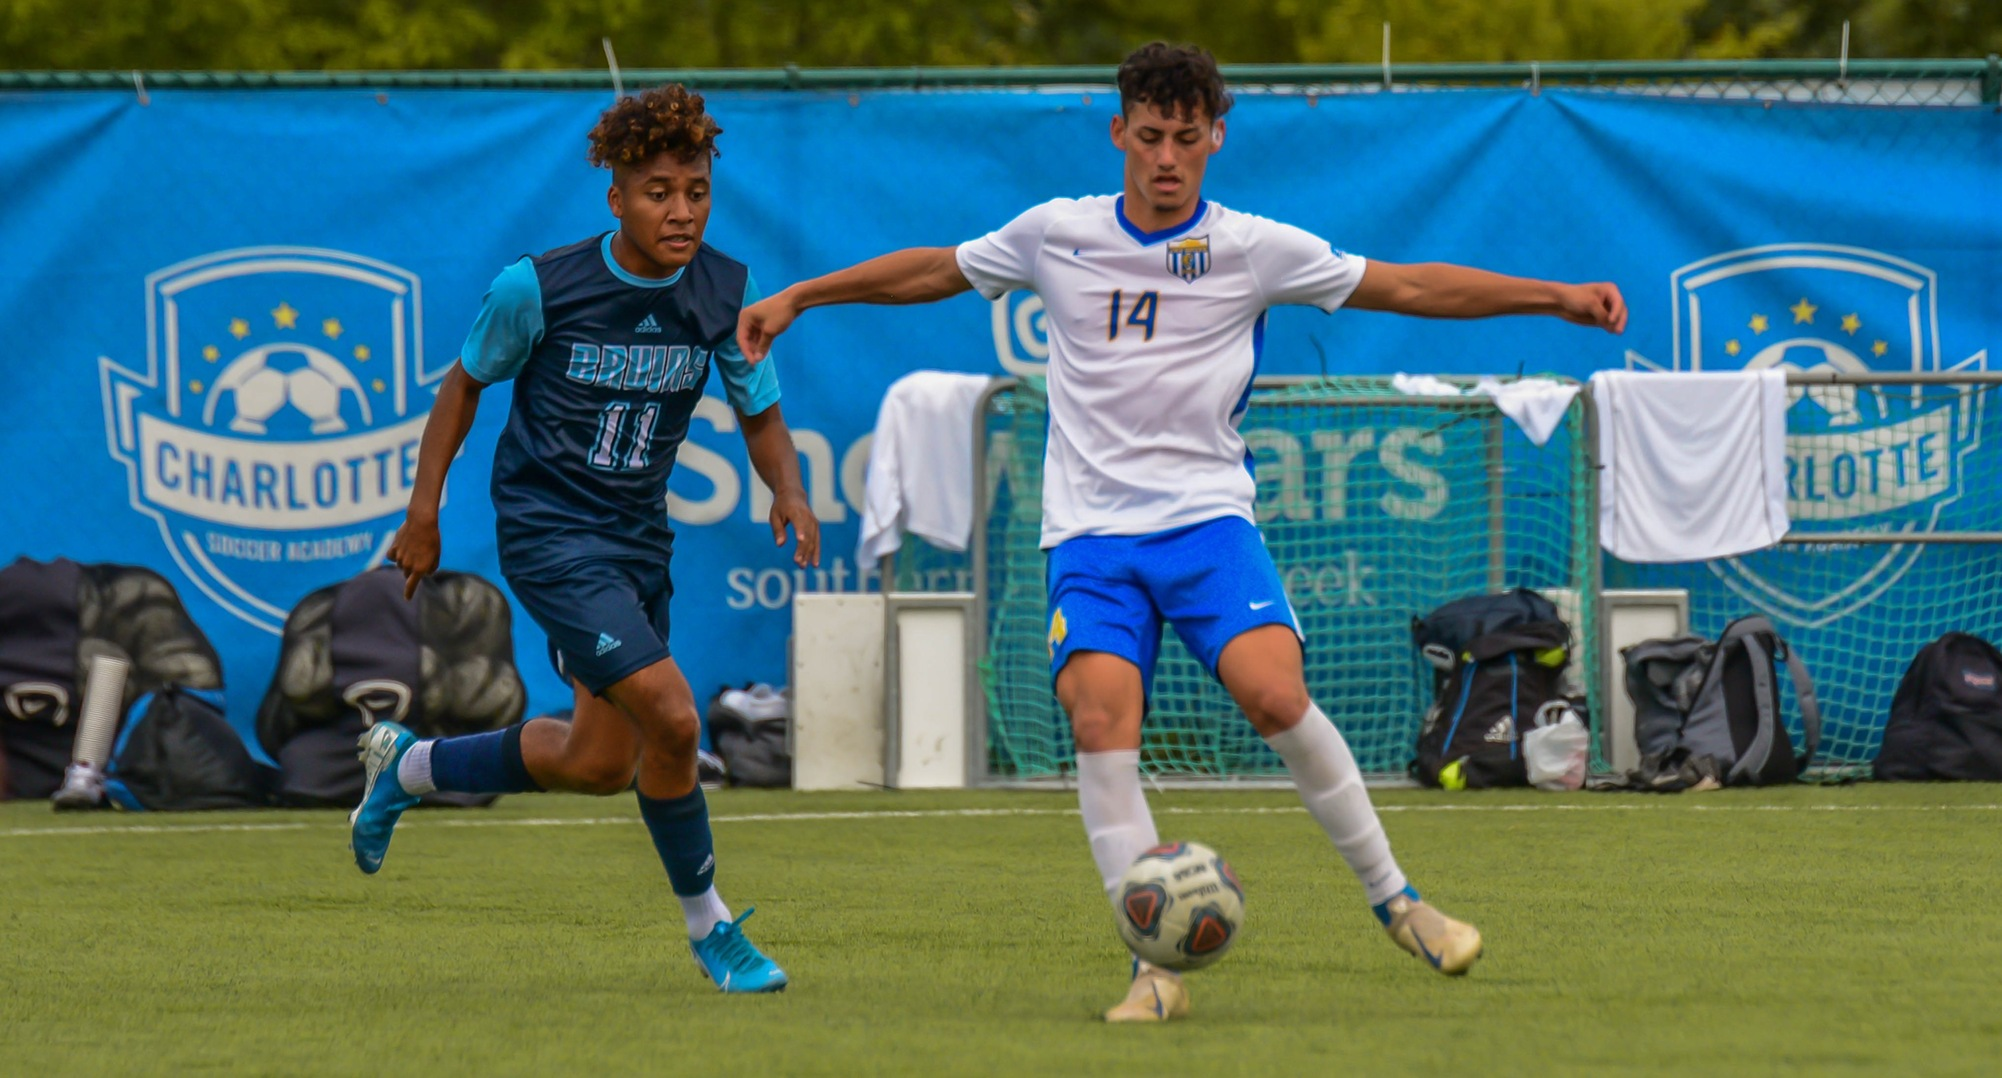 Men's Soccer Falls To Bruins 1-0